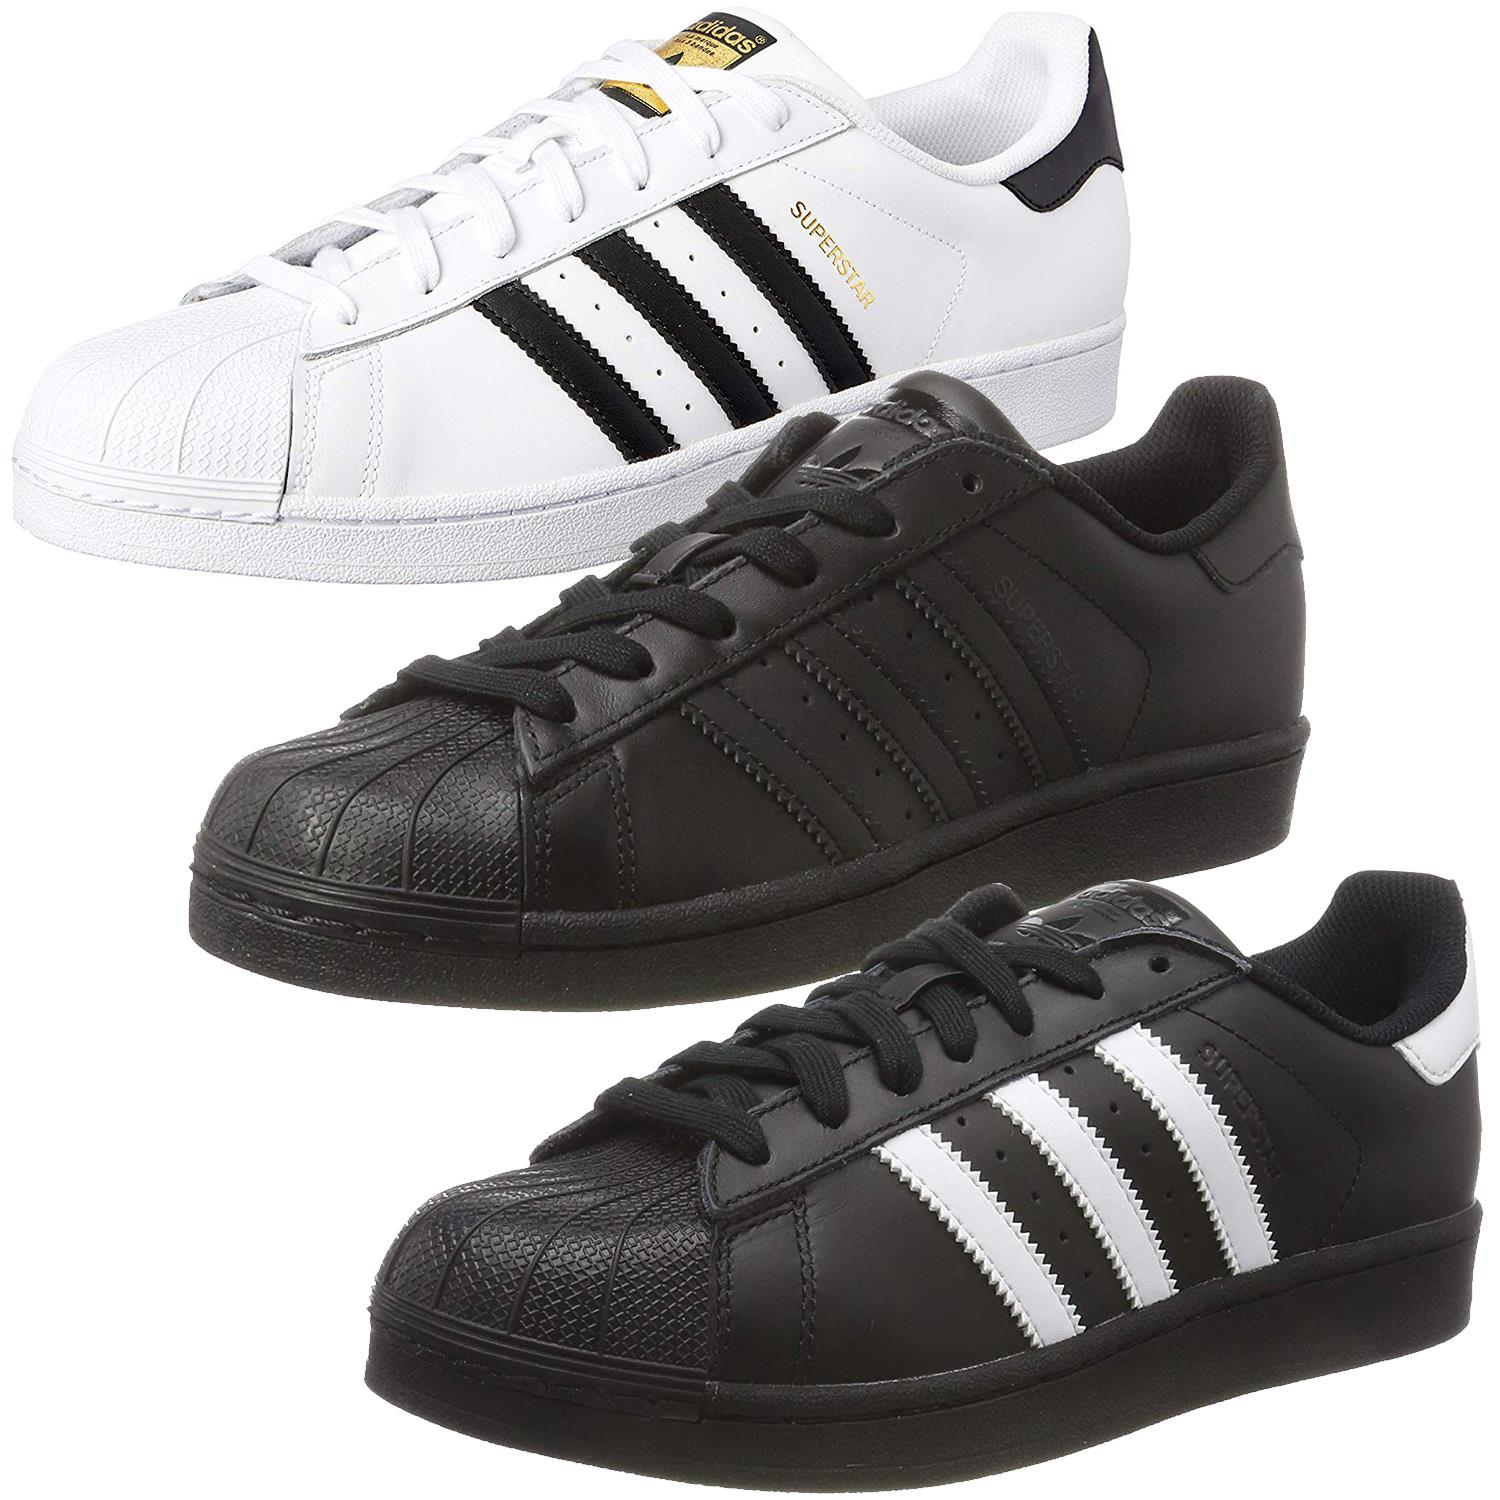 "ADIDAS SUPERSTARS BLACK WHITE LEATHER TRAINER /""SHELL TOE/"" STYLES UK 7 TO 12"